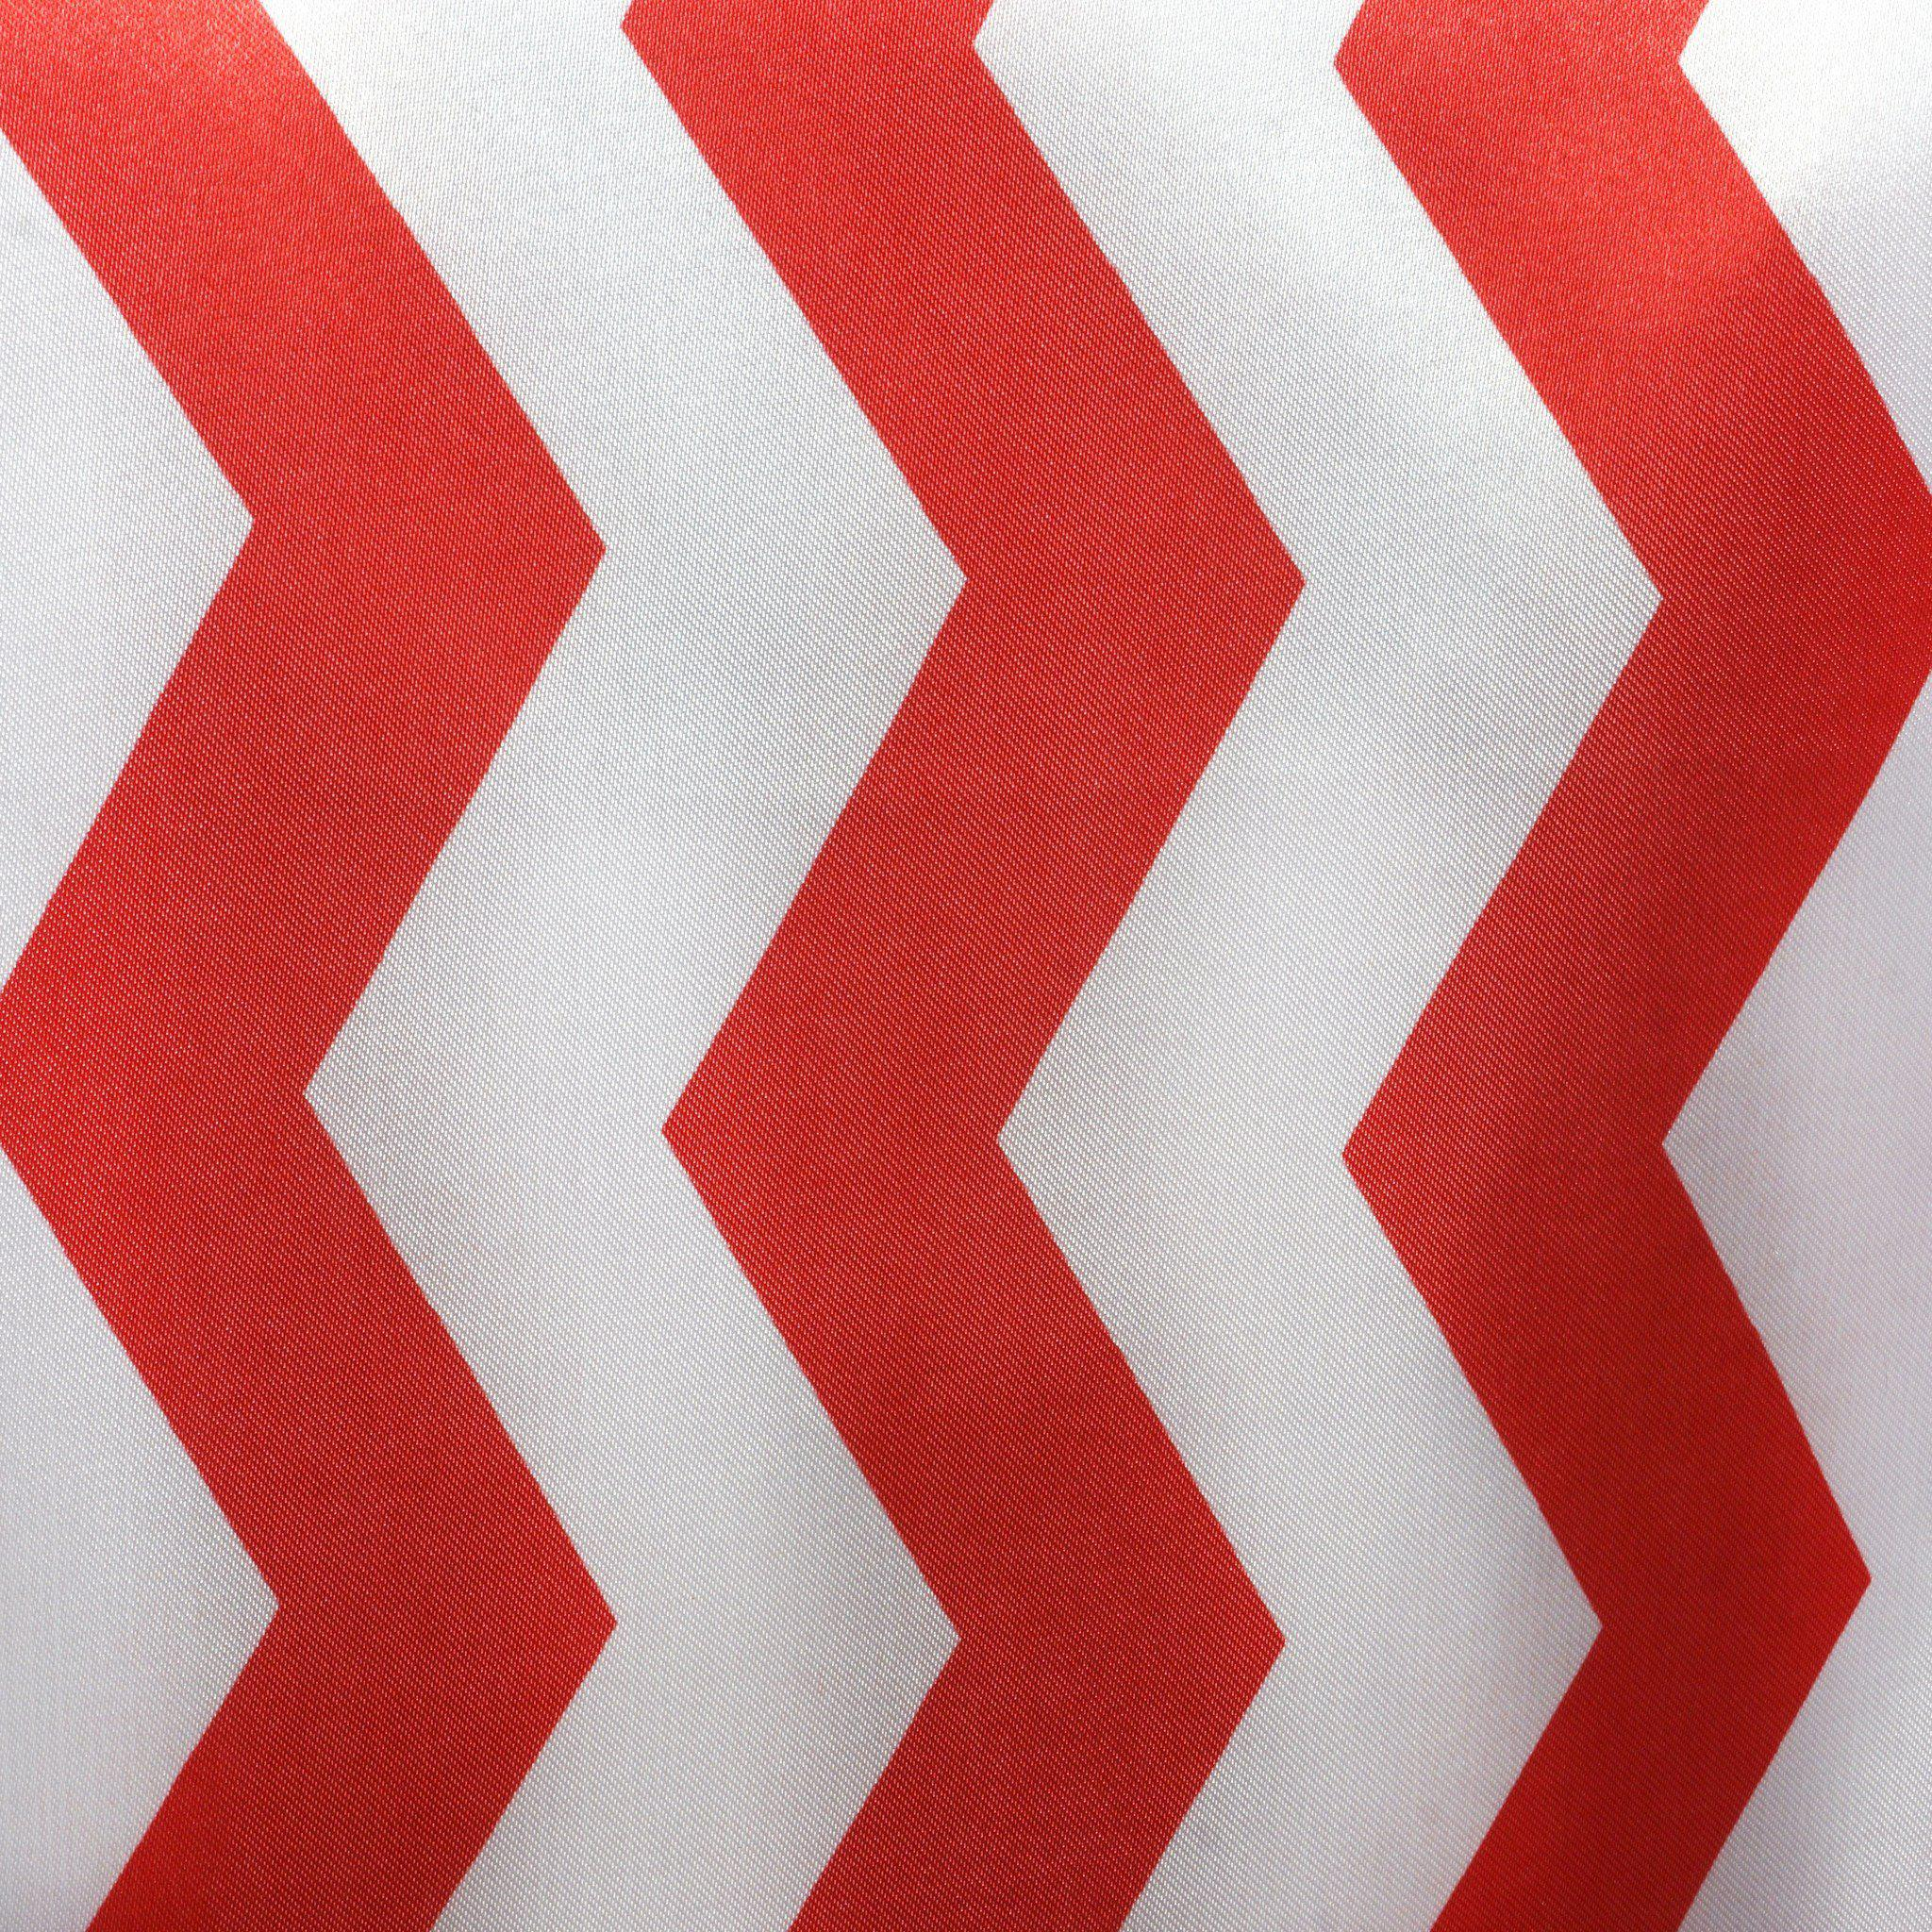 Redwhite Chevron Satin Table Runner Tablecloths Factory